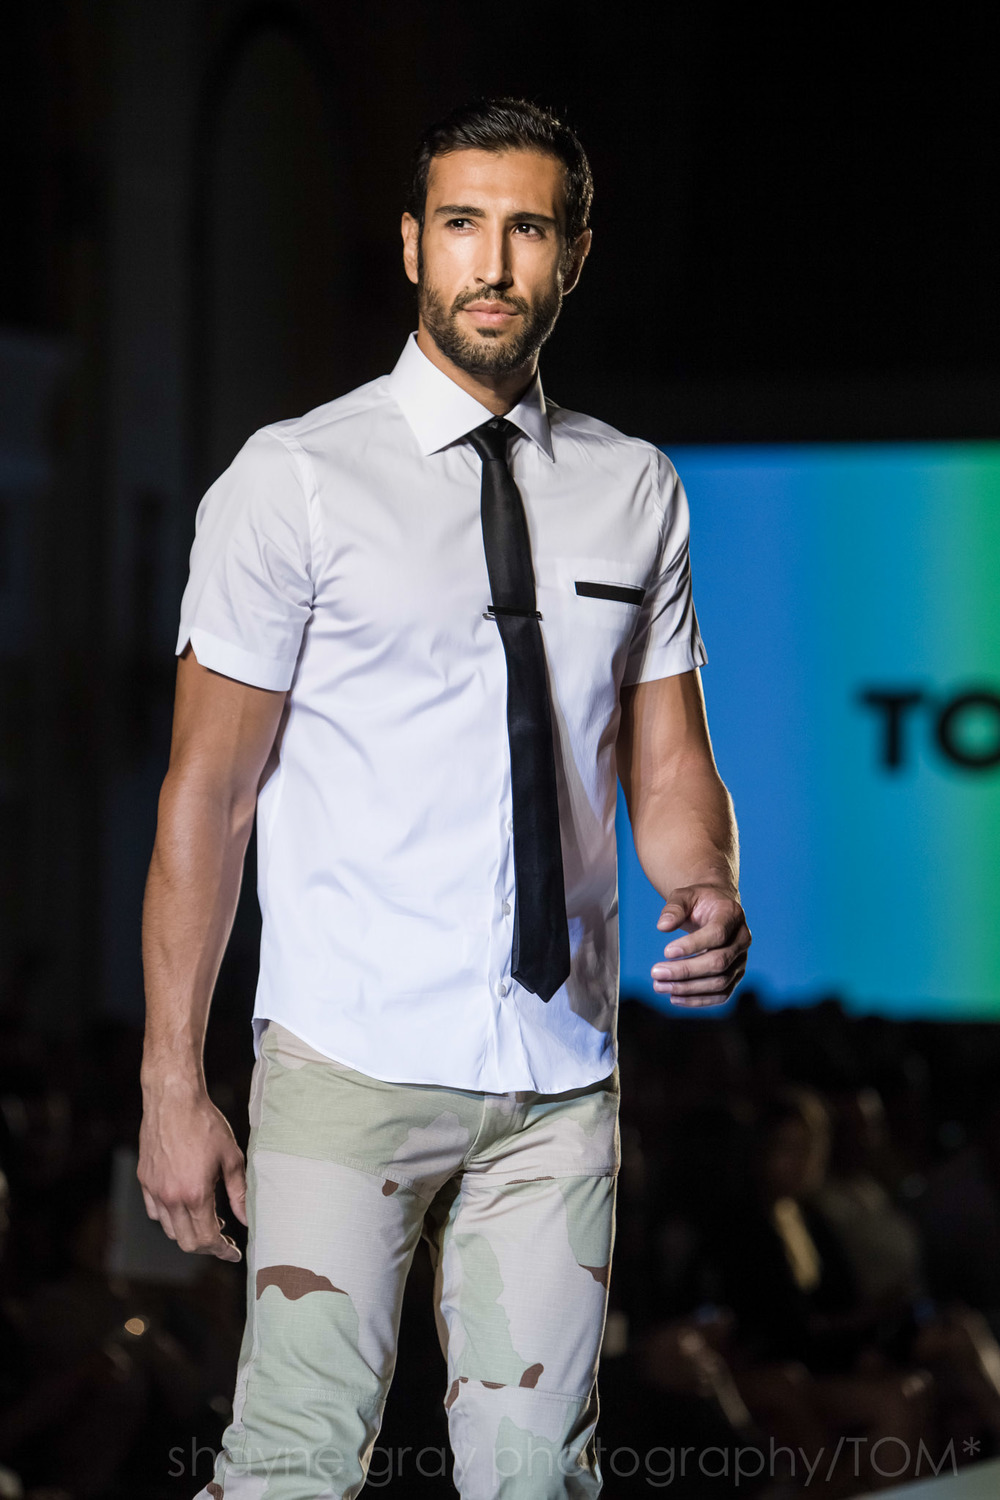 Shayne-Gray-Toronto-men's-fashion_week-TOM-christopher-bates-7232.jpg